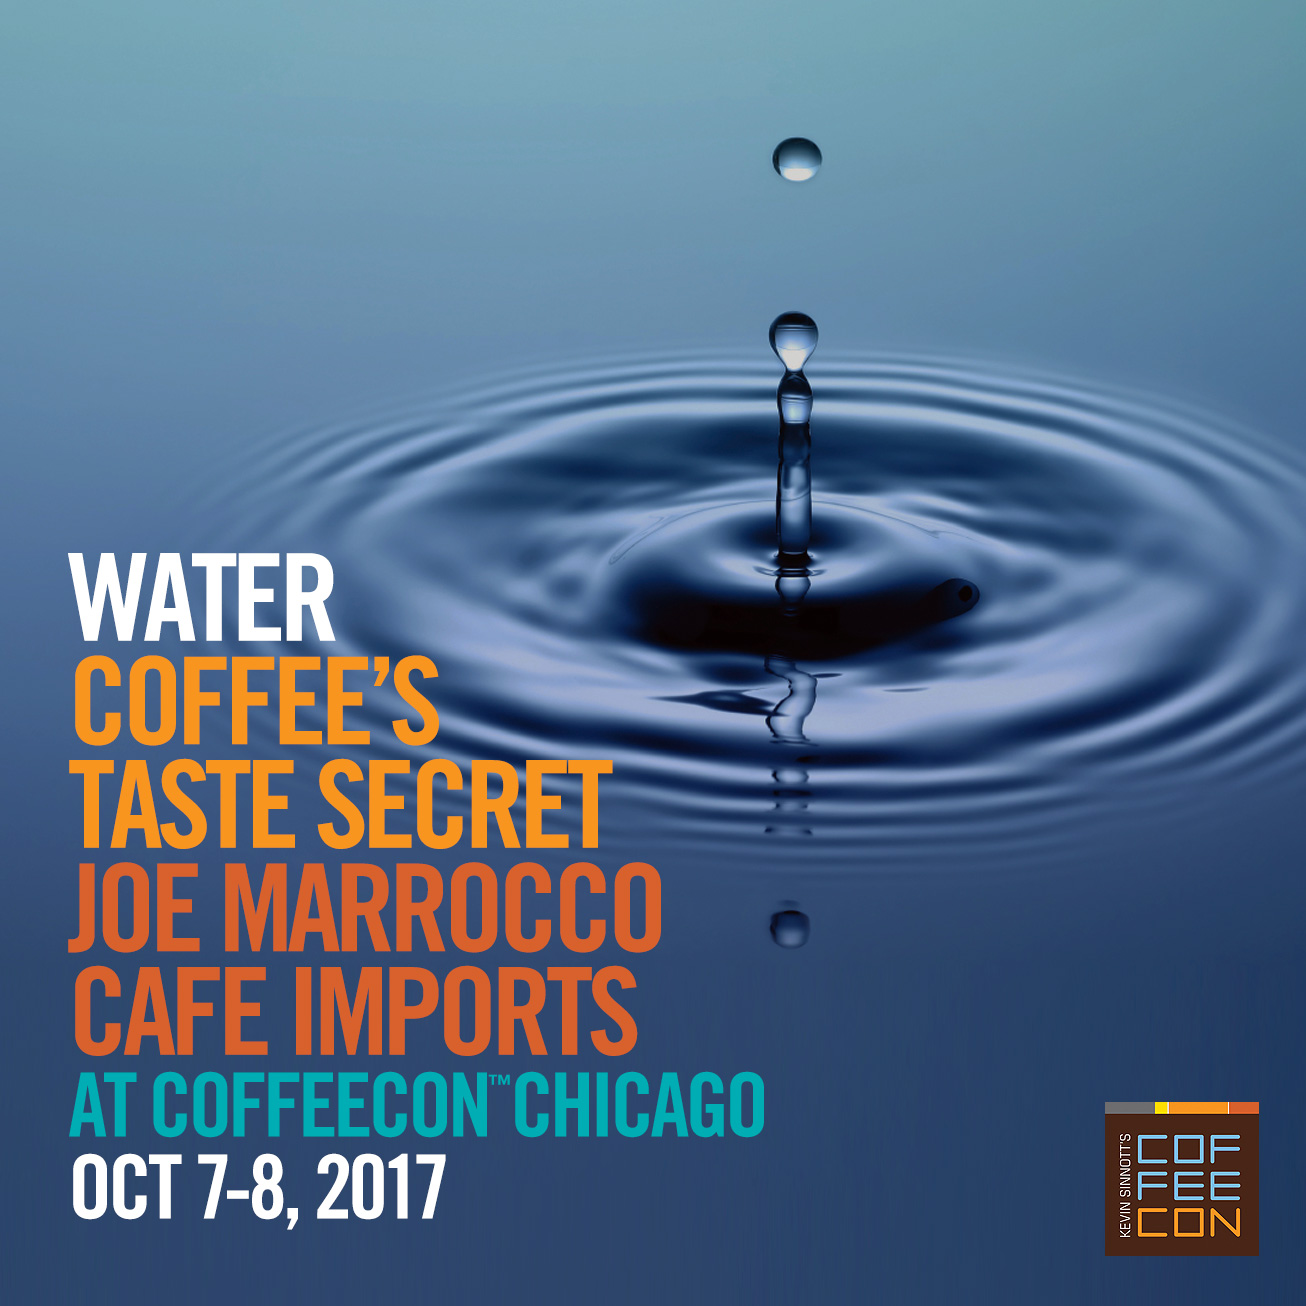 Water Coffee's Taste Secret with Joe Marrocco at CoffeeConChicago 2017